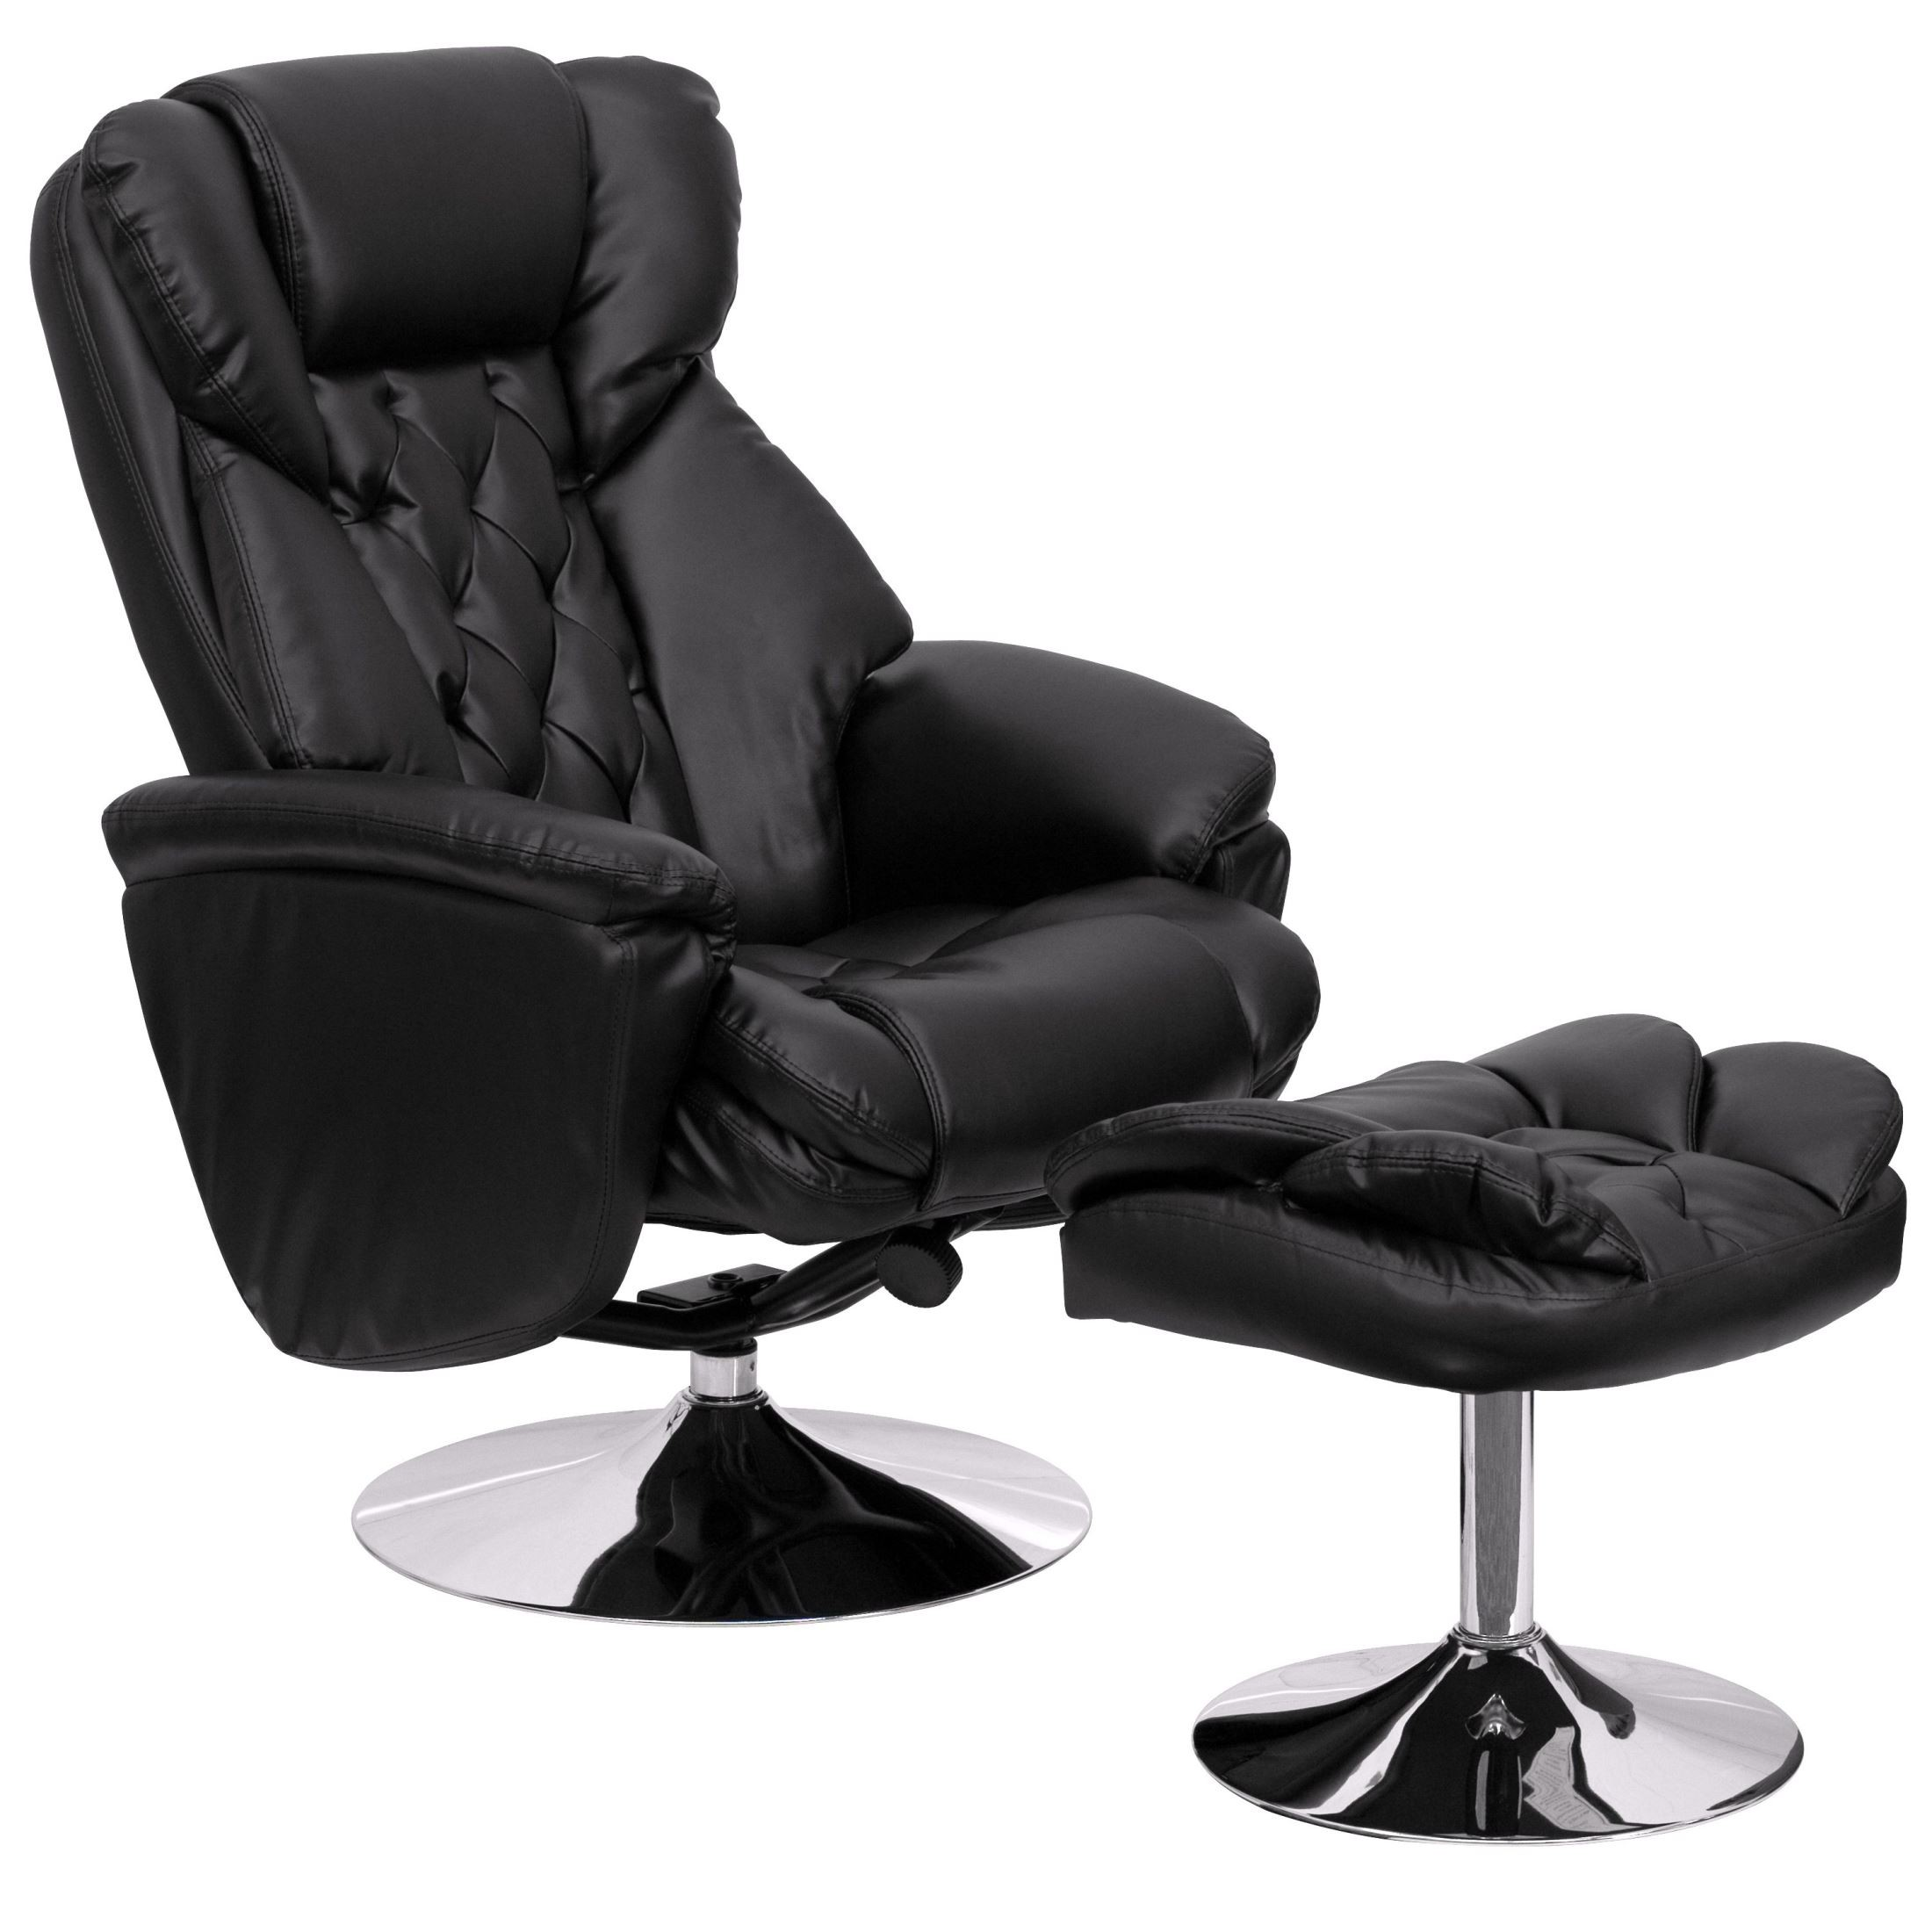 1000411 Black Recliner And Ottoman From Renegade Coleman